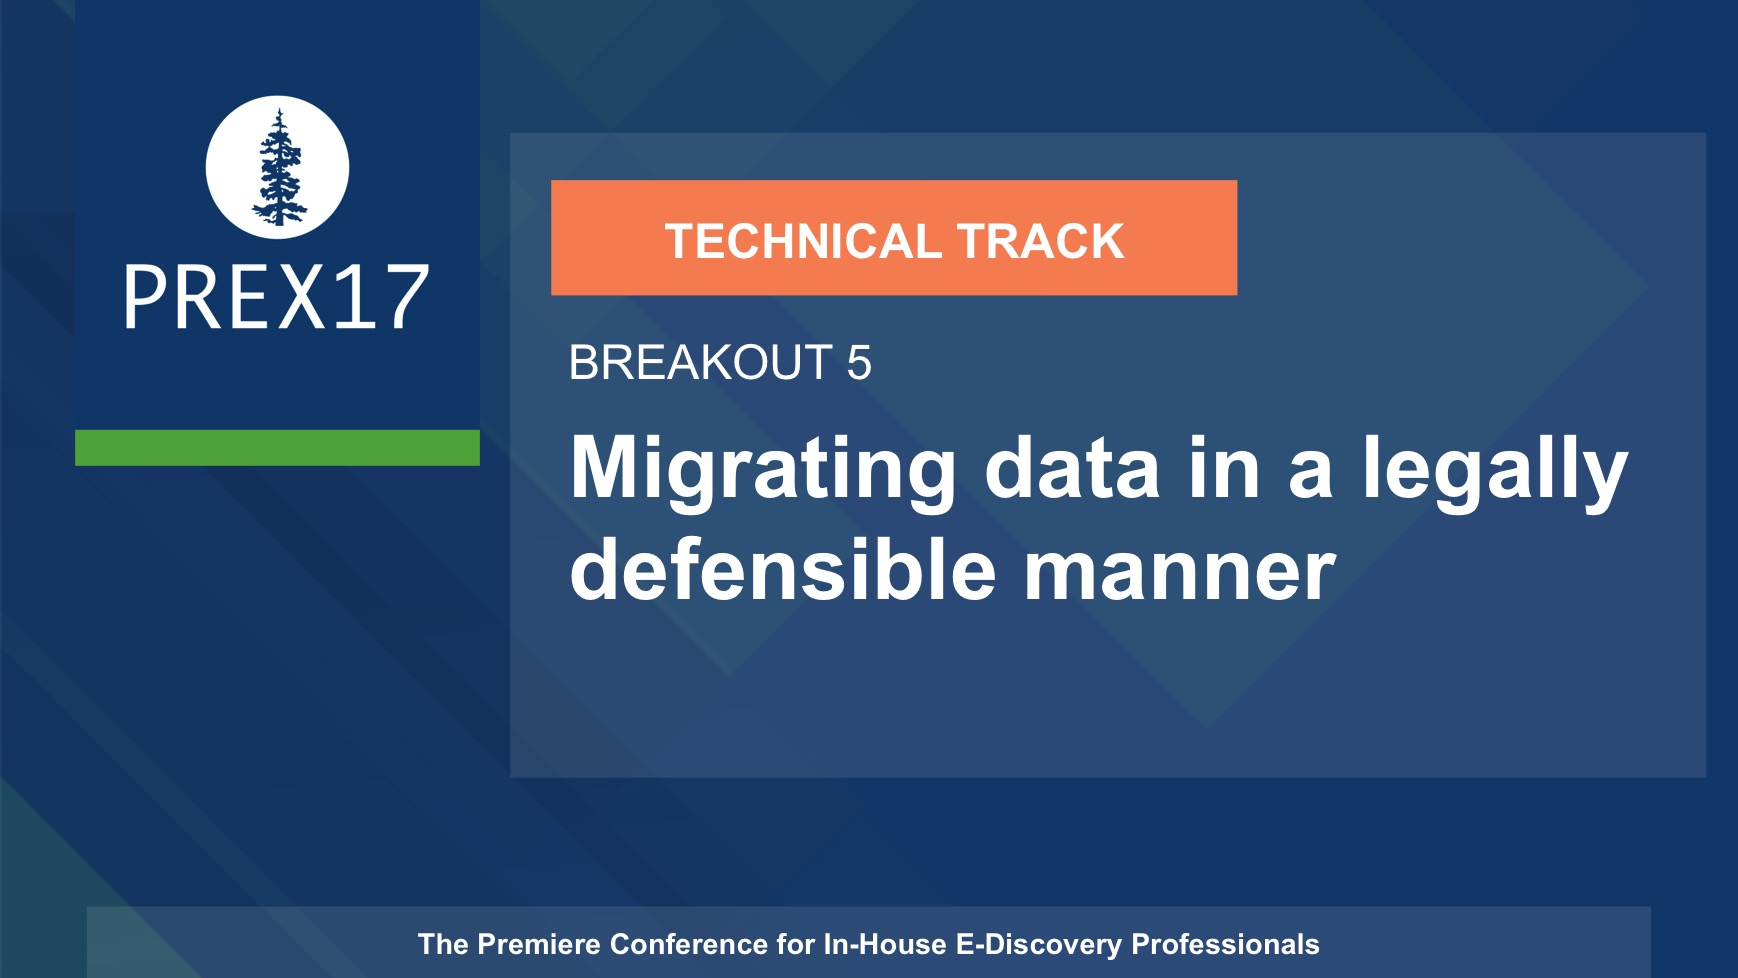 (Breakout 5 - Technical) Migrating Data in a Legally Defensible Manner